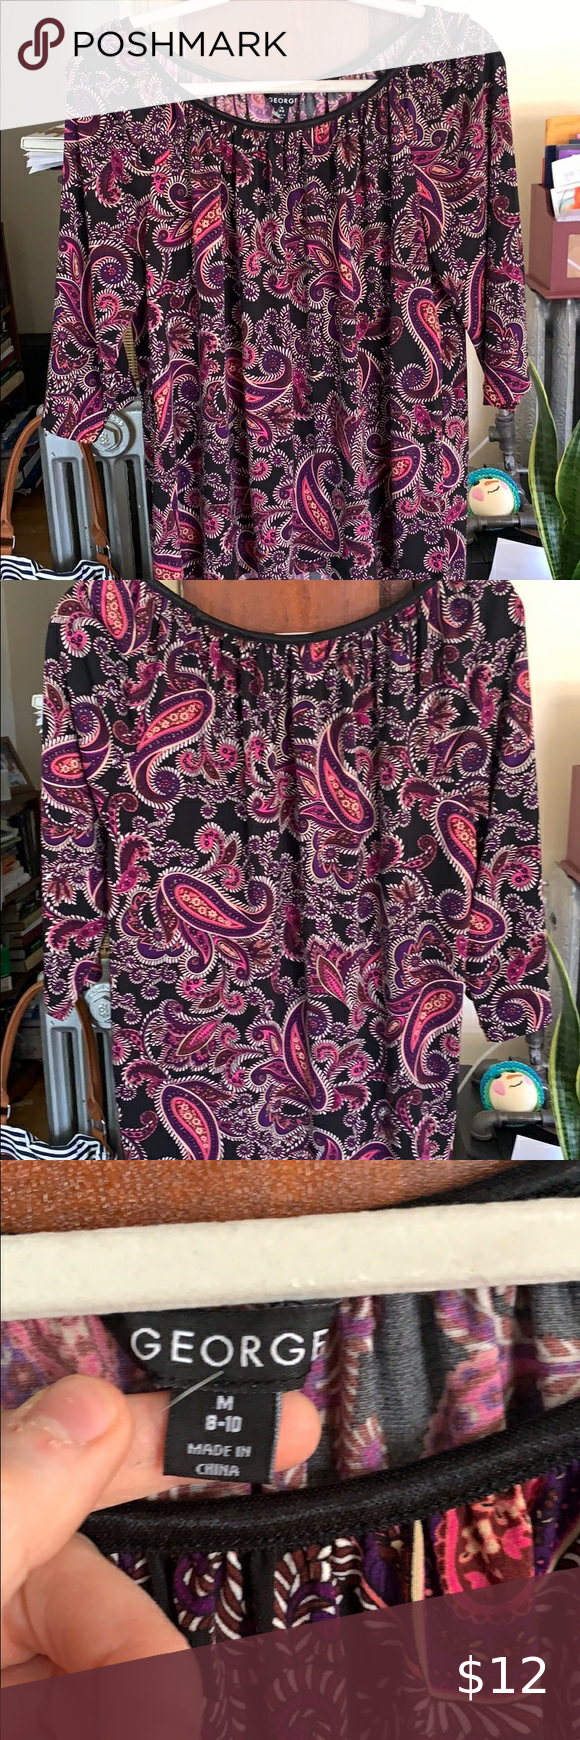 Fun print top Polyester top- perfect for a job interview/occasion where you need...